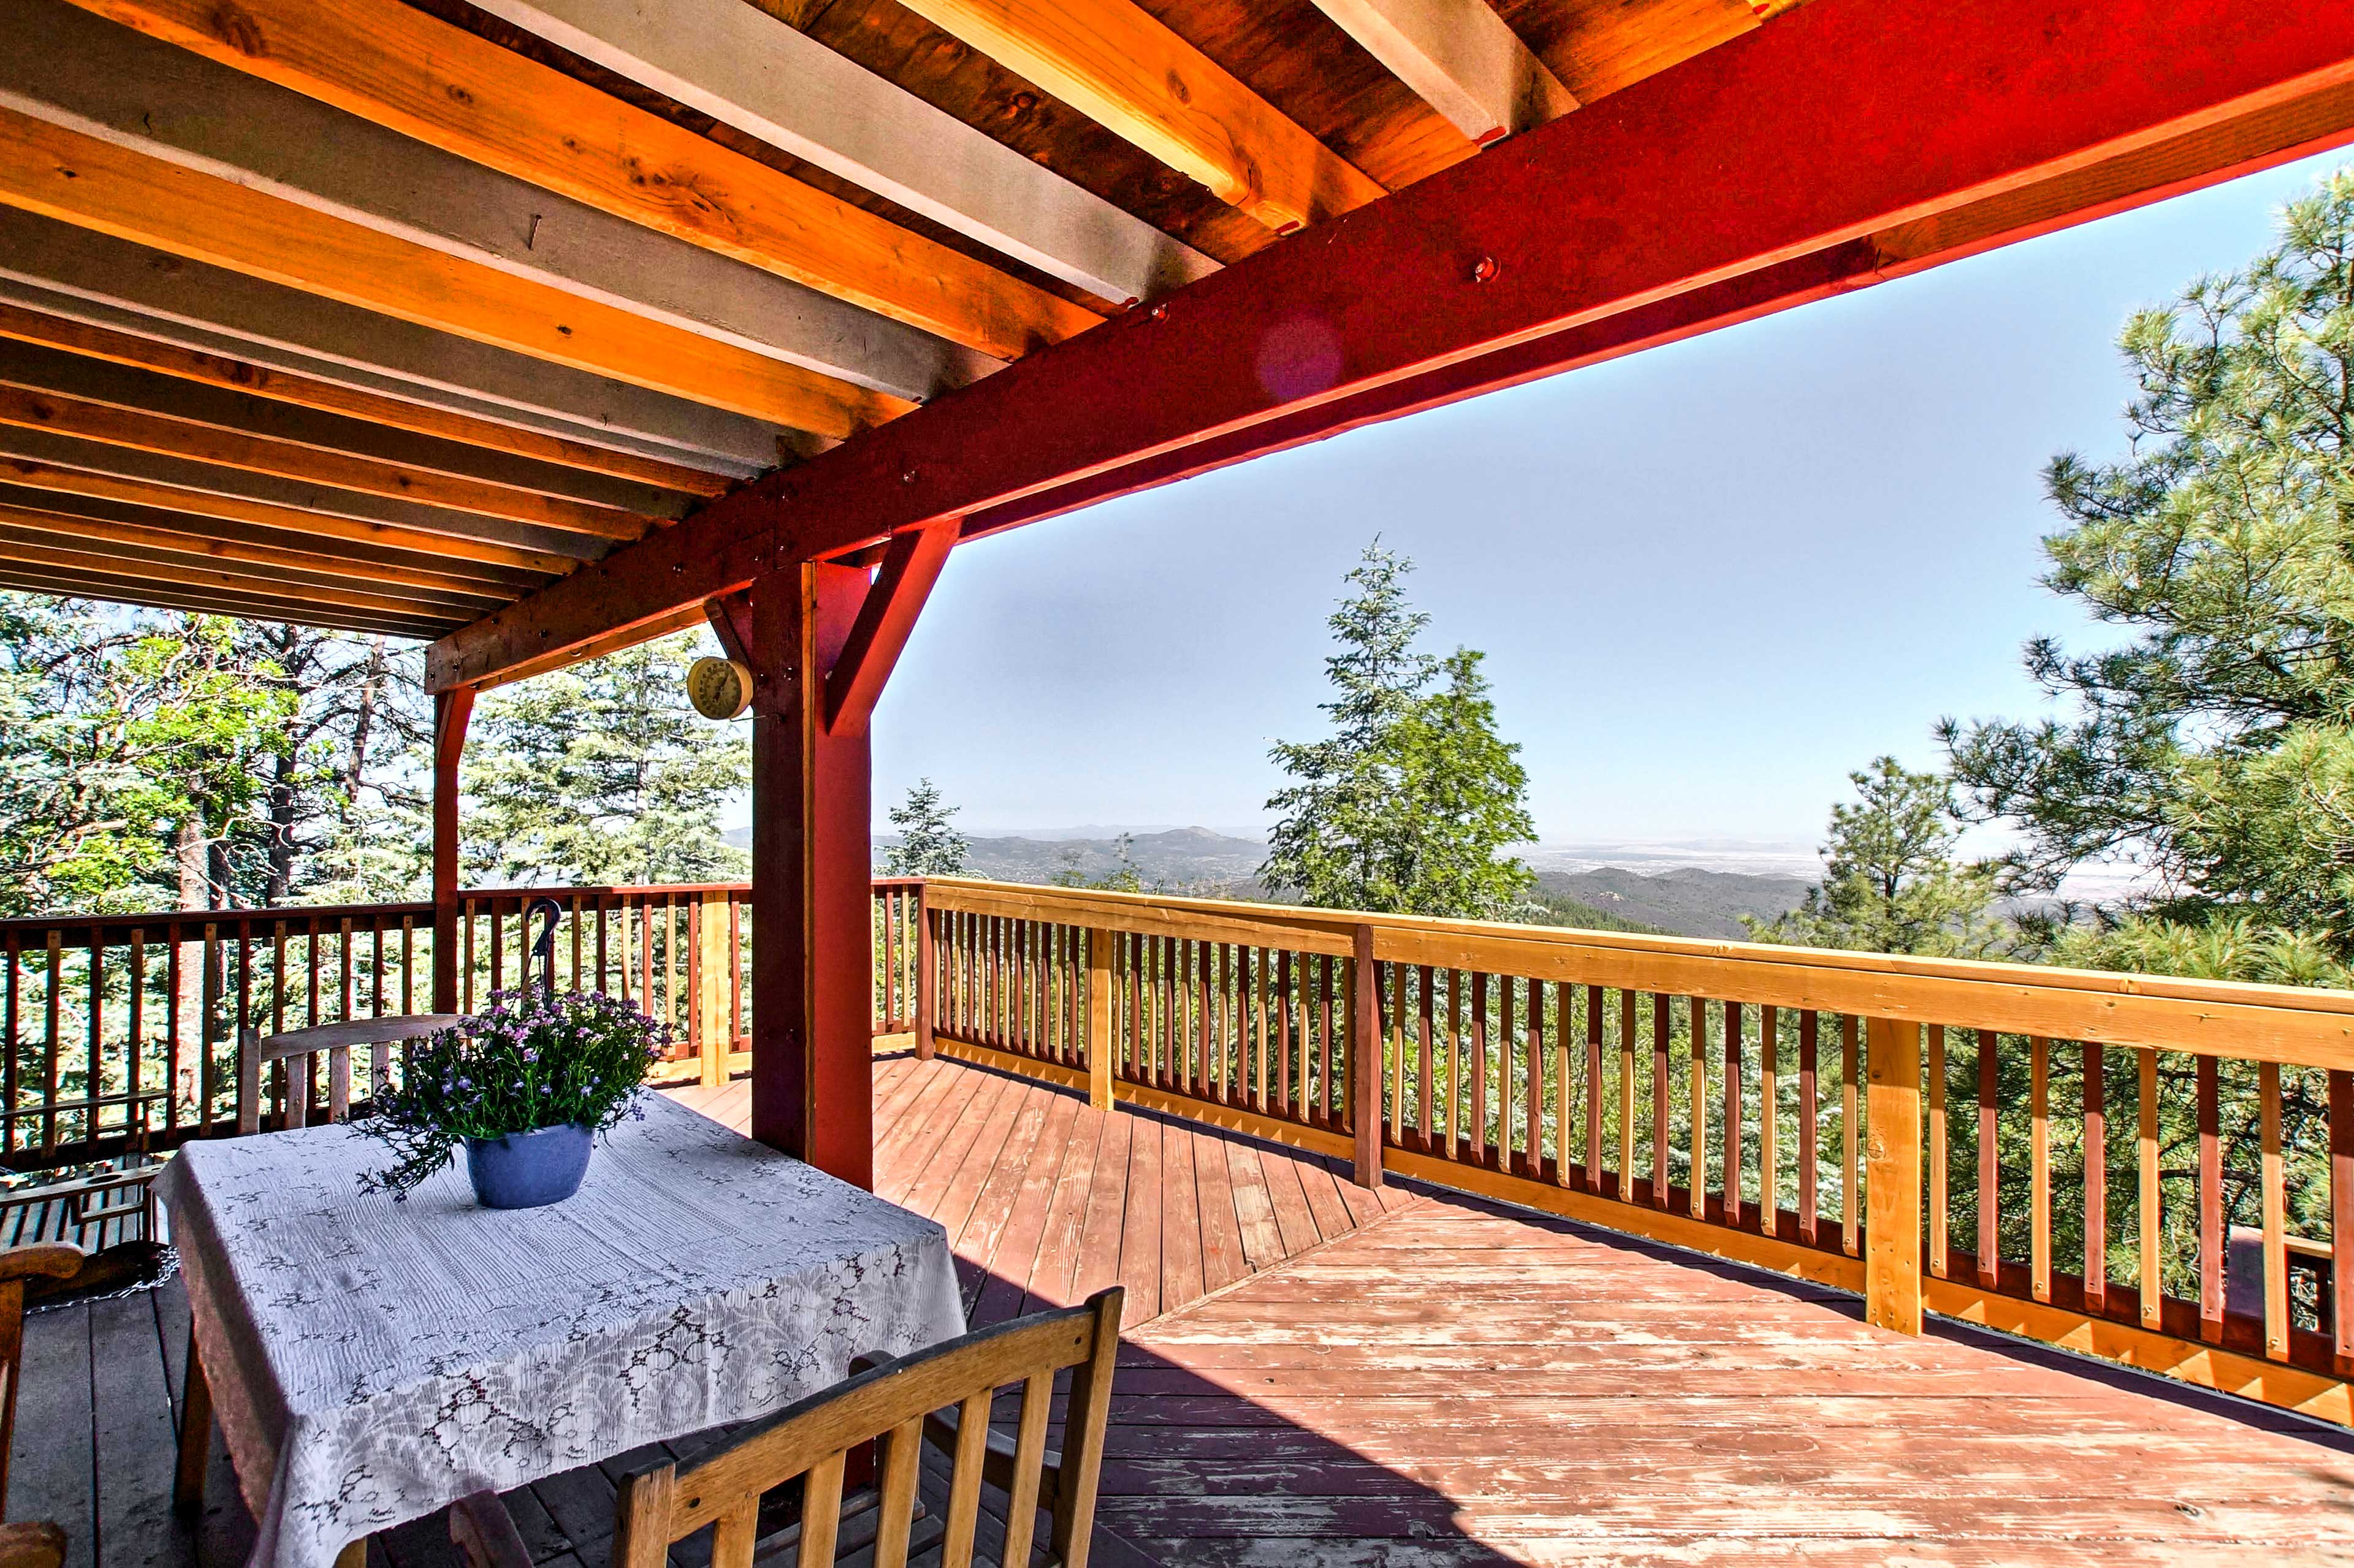 Dine al fresco on the private deck with unbelievable views.